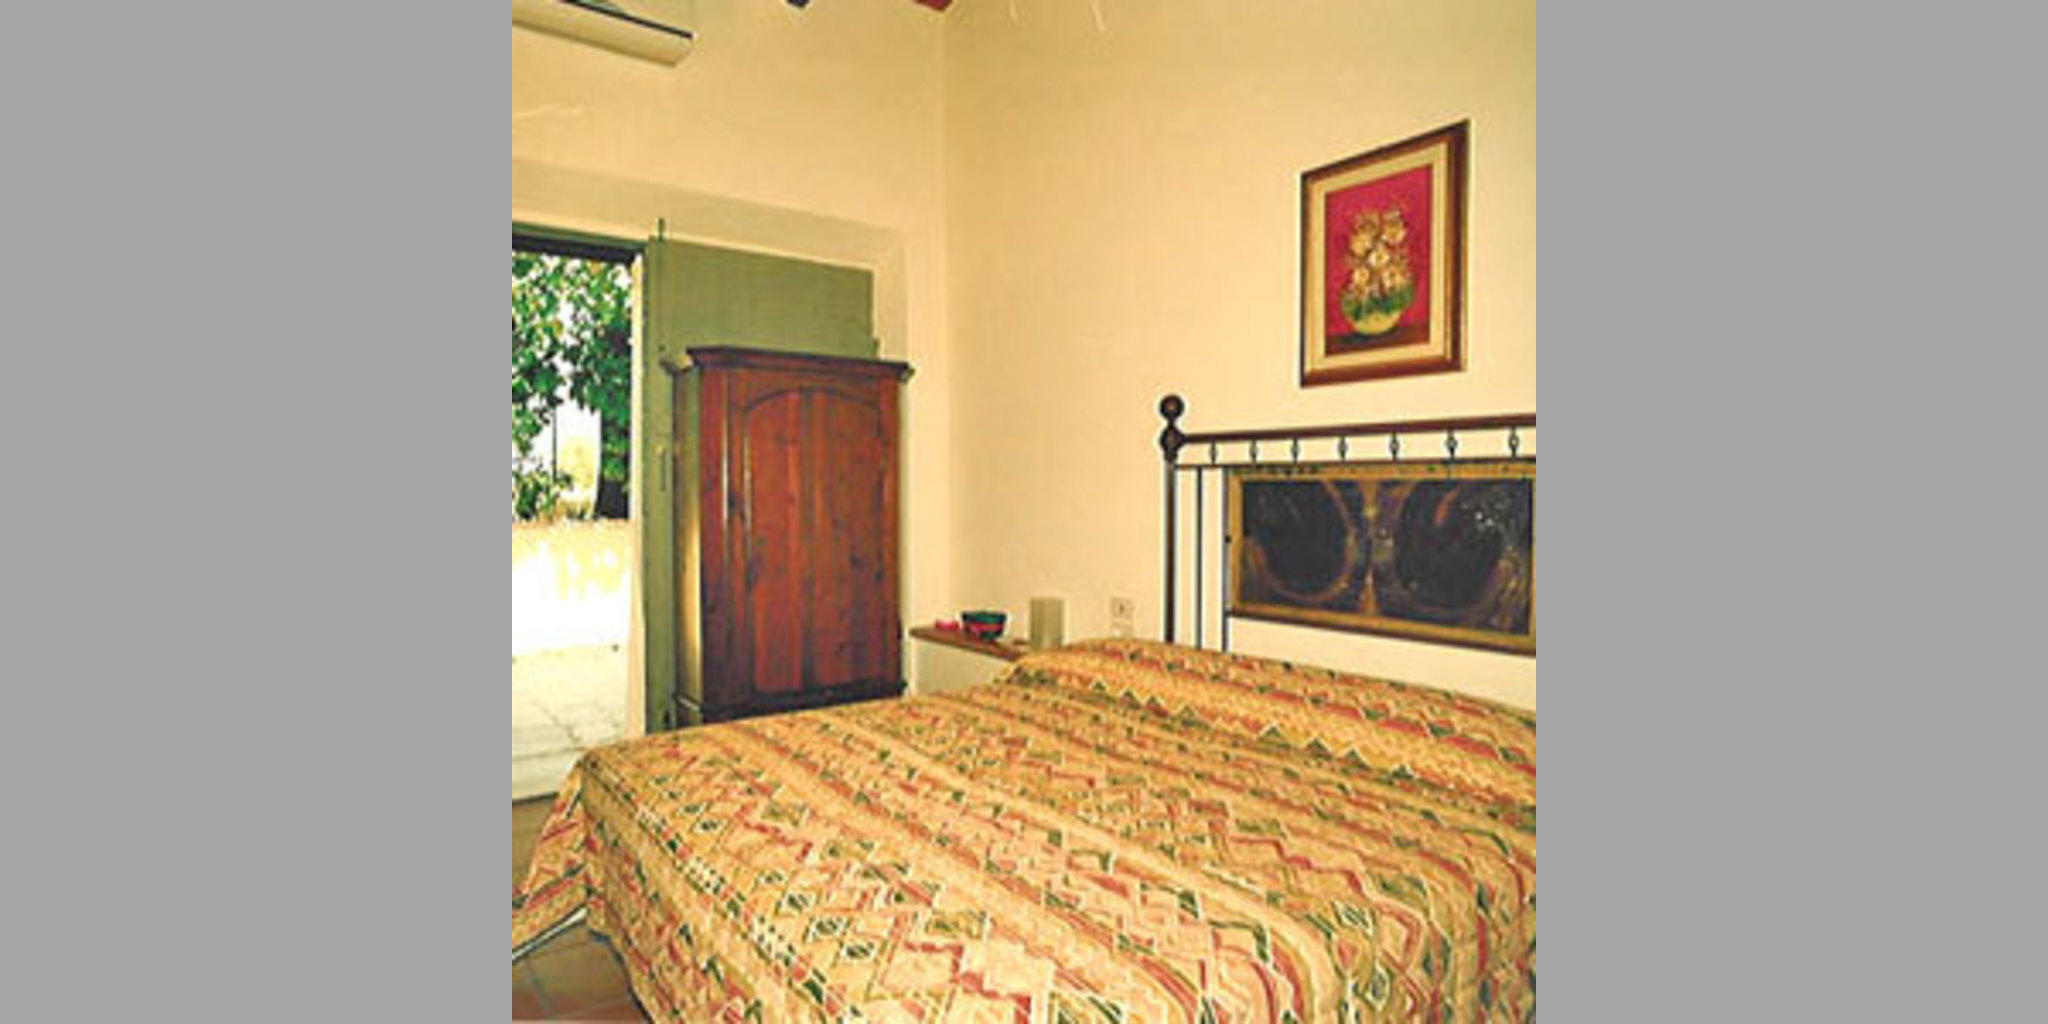 Bed & Breakfast Scandicci - Rinaldi1